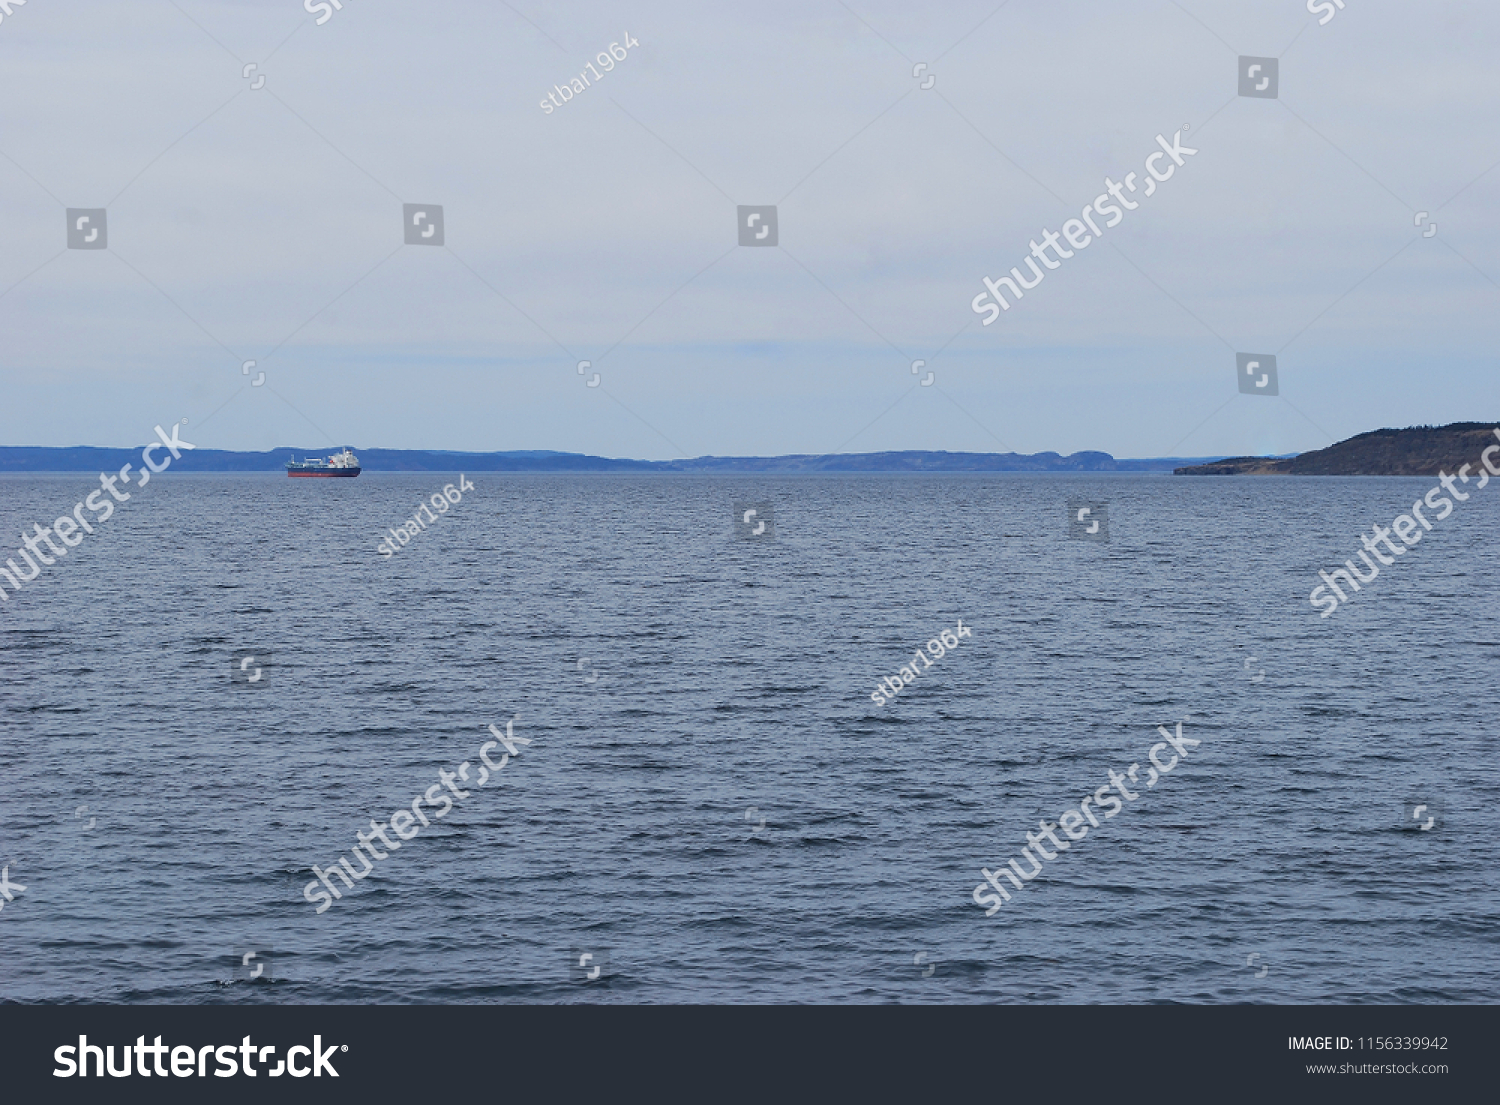 Ship Crossing Bay Conception Bay South Stock Photo Edit Now 1156339942